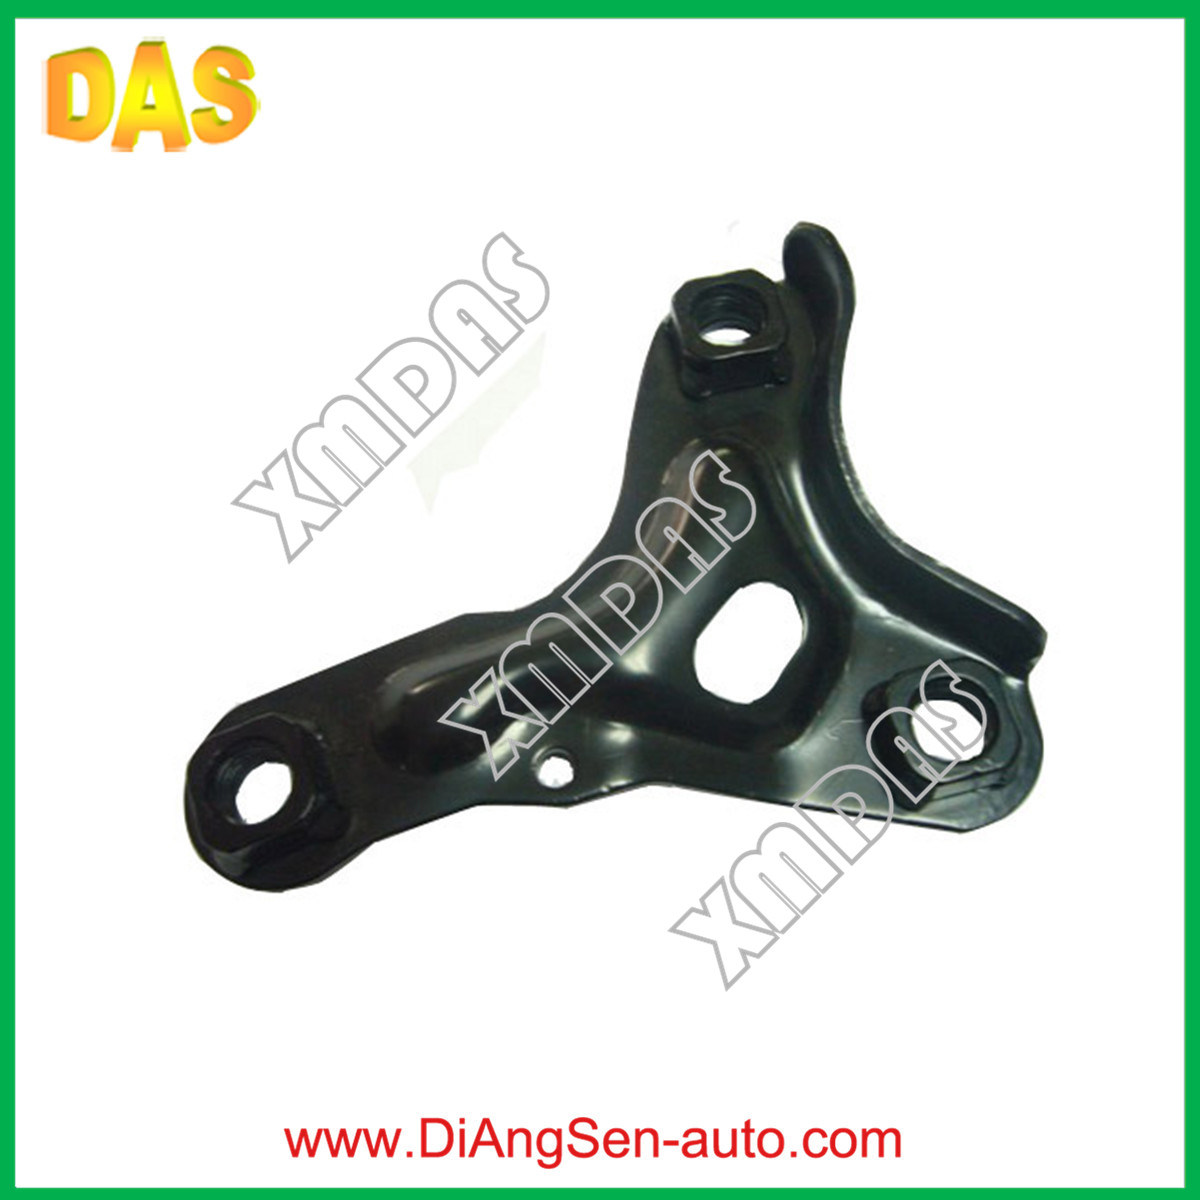 China Oem Auto Car Spare Parts Rubber Engine Mount For Honda 50828 2004 Crv Discount Factory And Sel 000